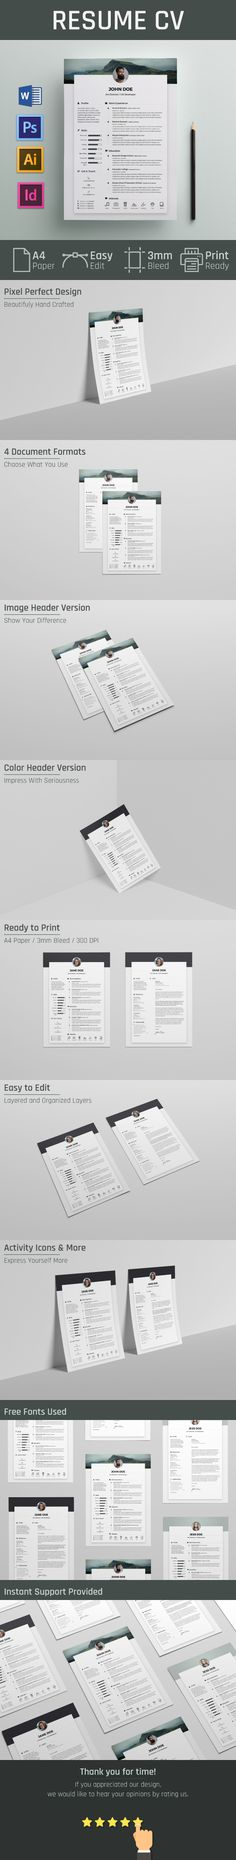 Download Clean Resume Cv Template Free Psd. This Free Resume Cv Is